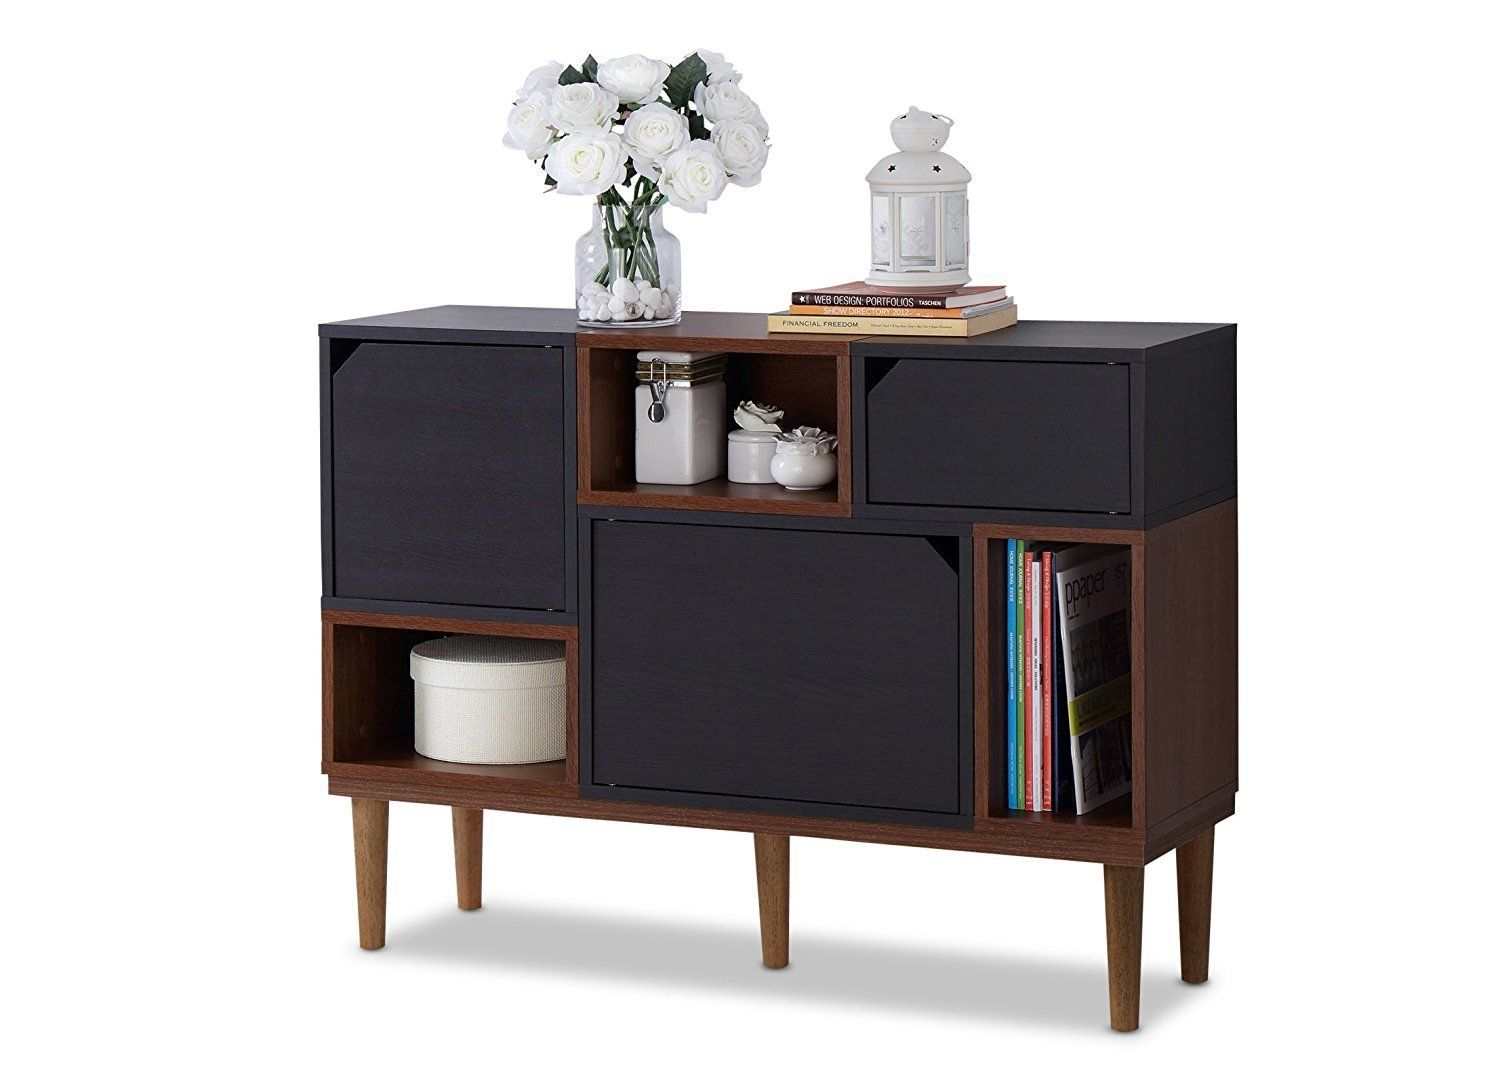 You Didnu0027t Think Weu0027re Create A Furniture List Without Including U003ca